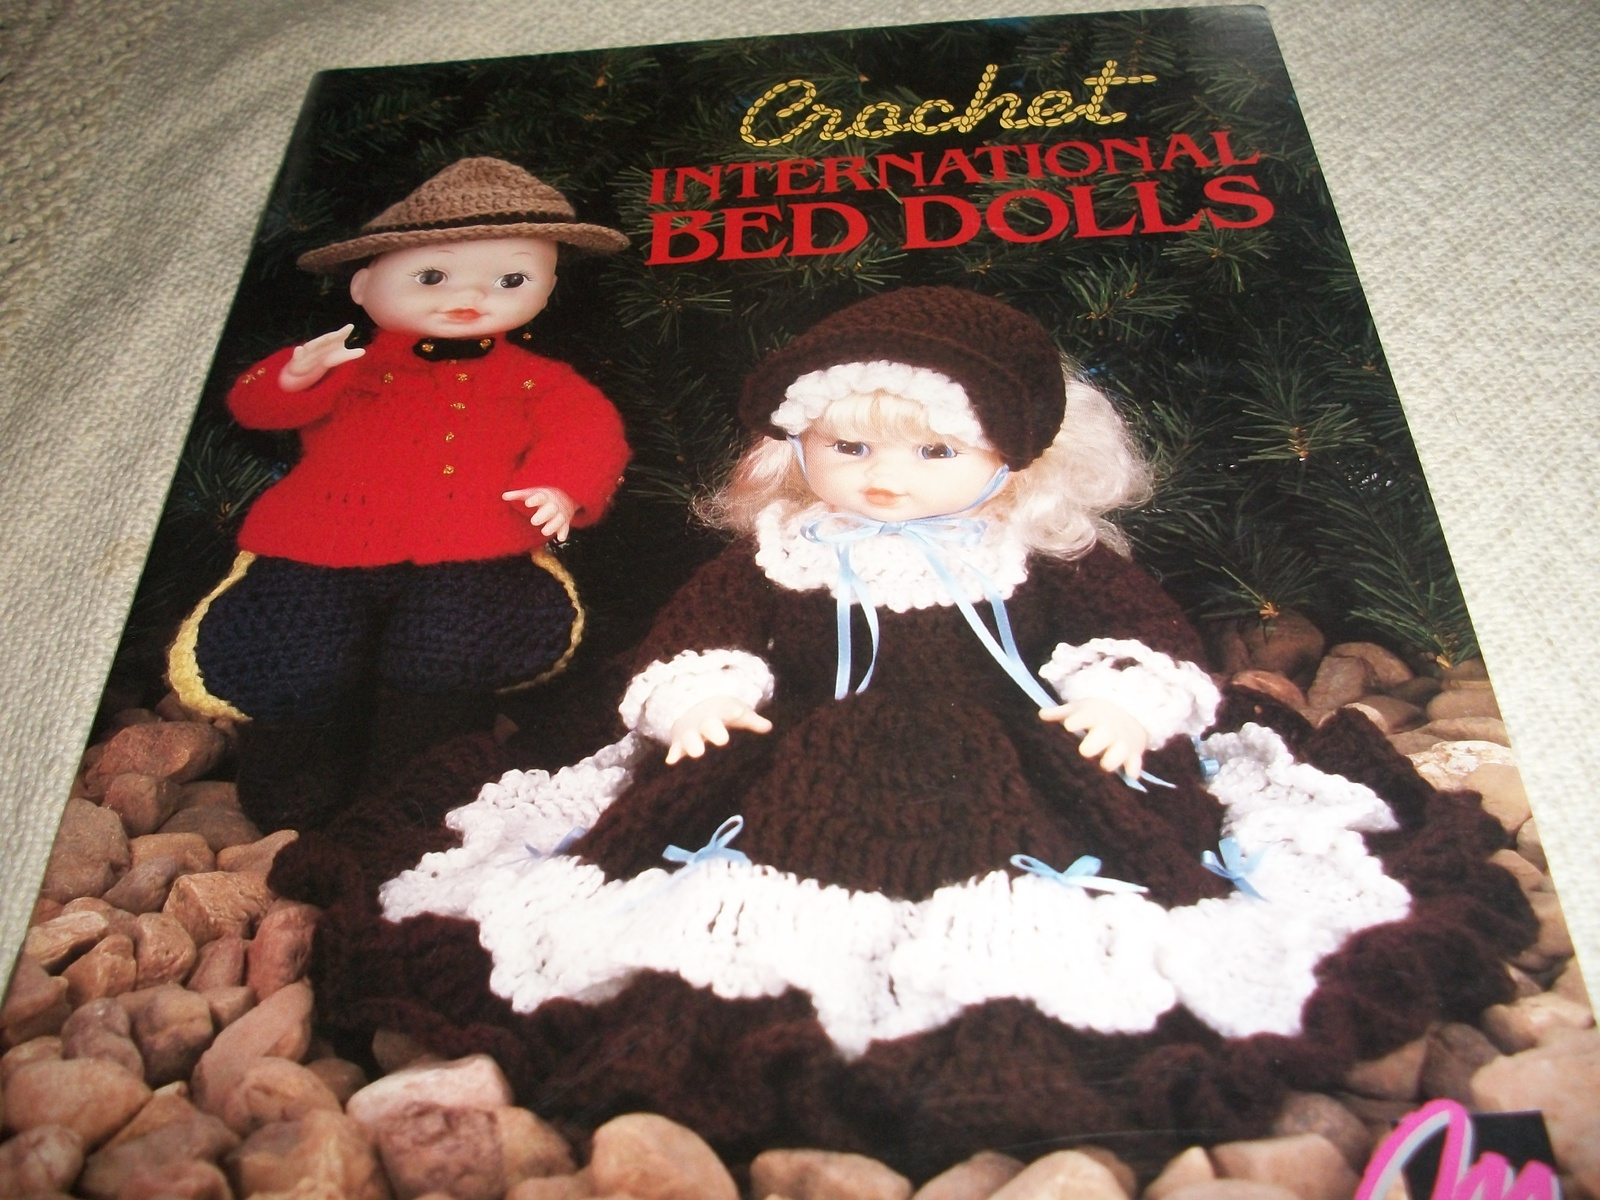 Primary image for Crochet International Bed Dolls